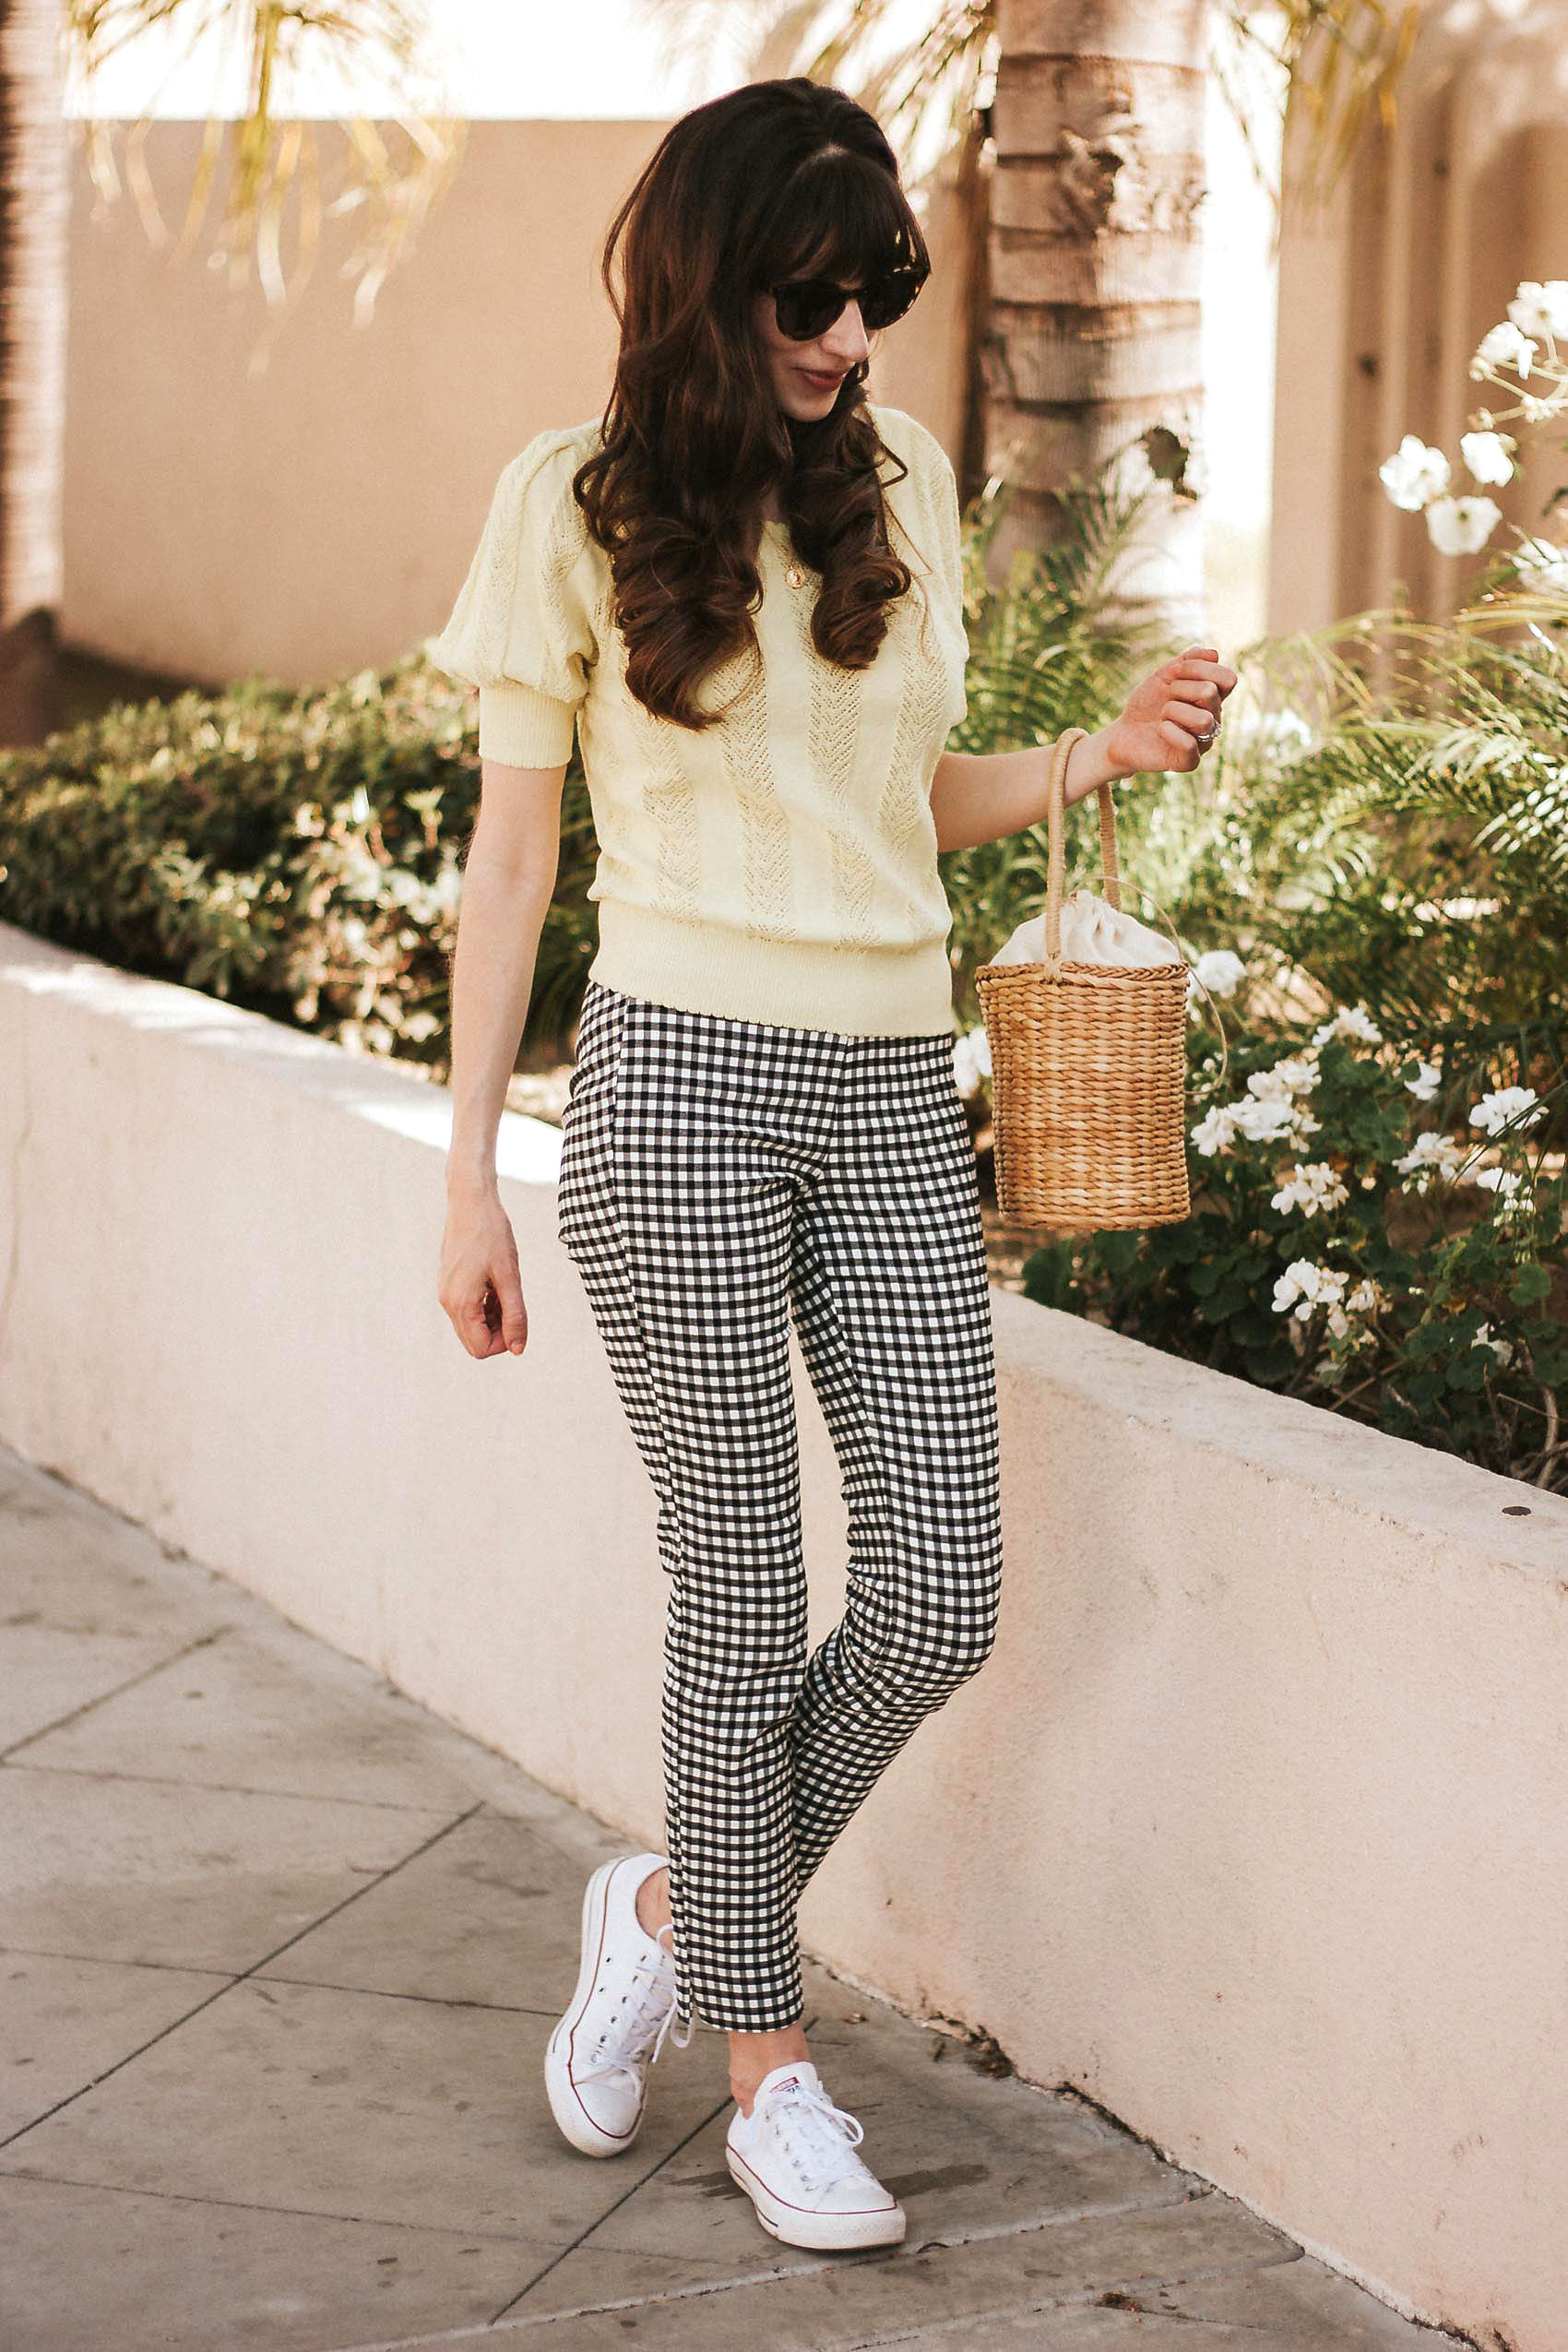 Los Angeles Style Blogger wearing Who What Wear Gingham Pants and & Other Stories Sweater